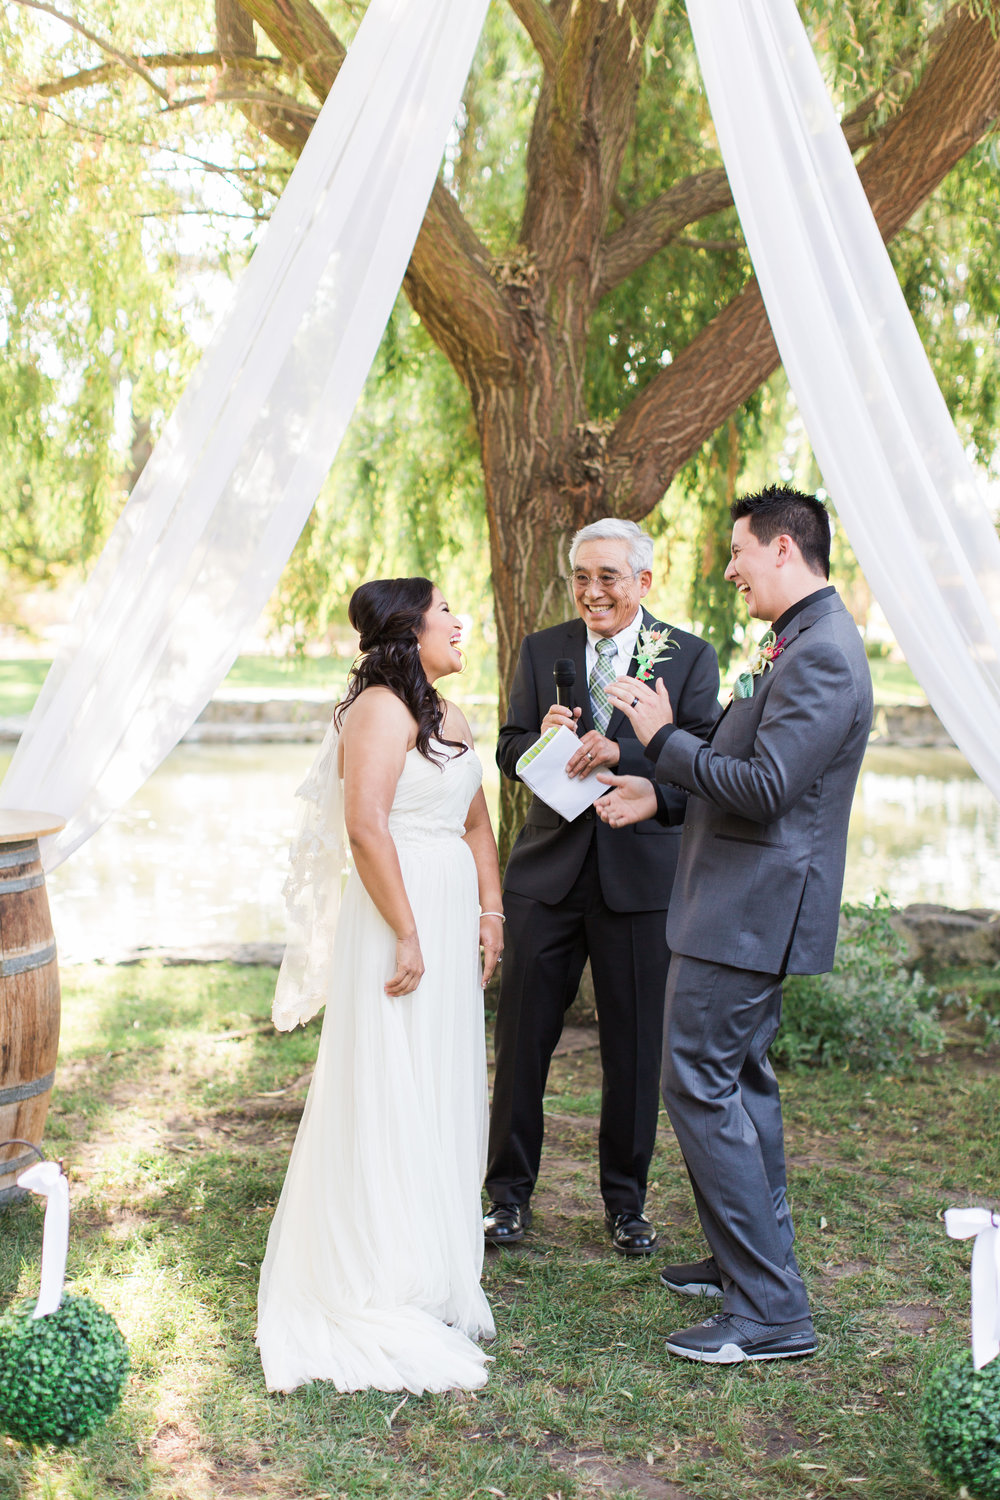 Mettler-family-vineyards-wedding-lodi-california-6910.jpg